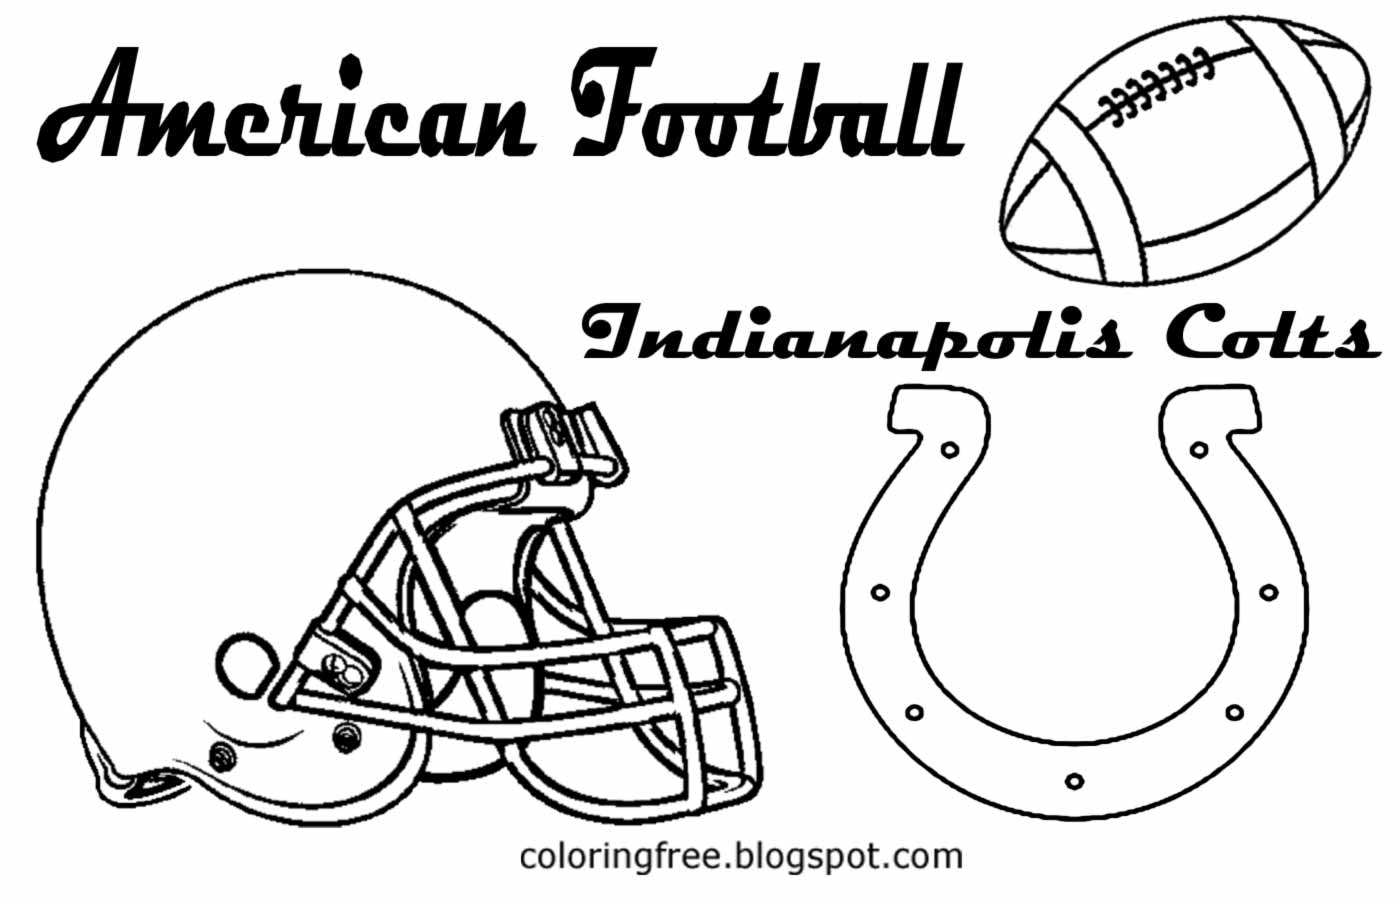 colts coloring page free coloring pages printable pictures to color kids page coloring colts